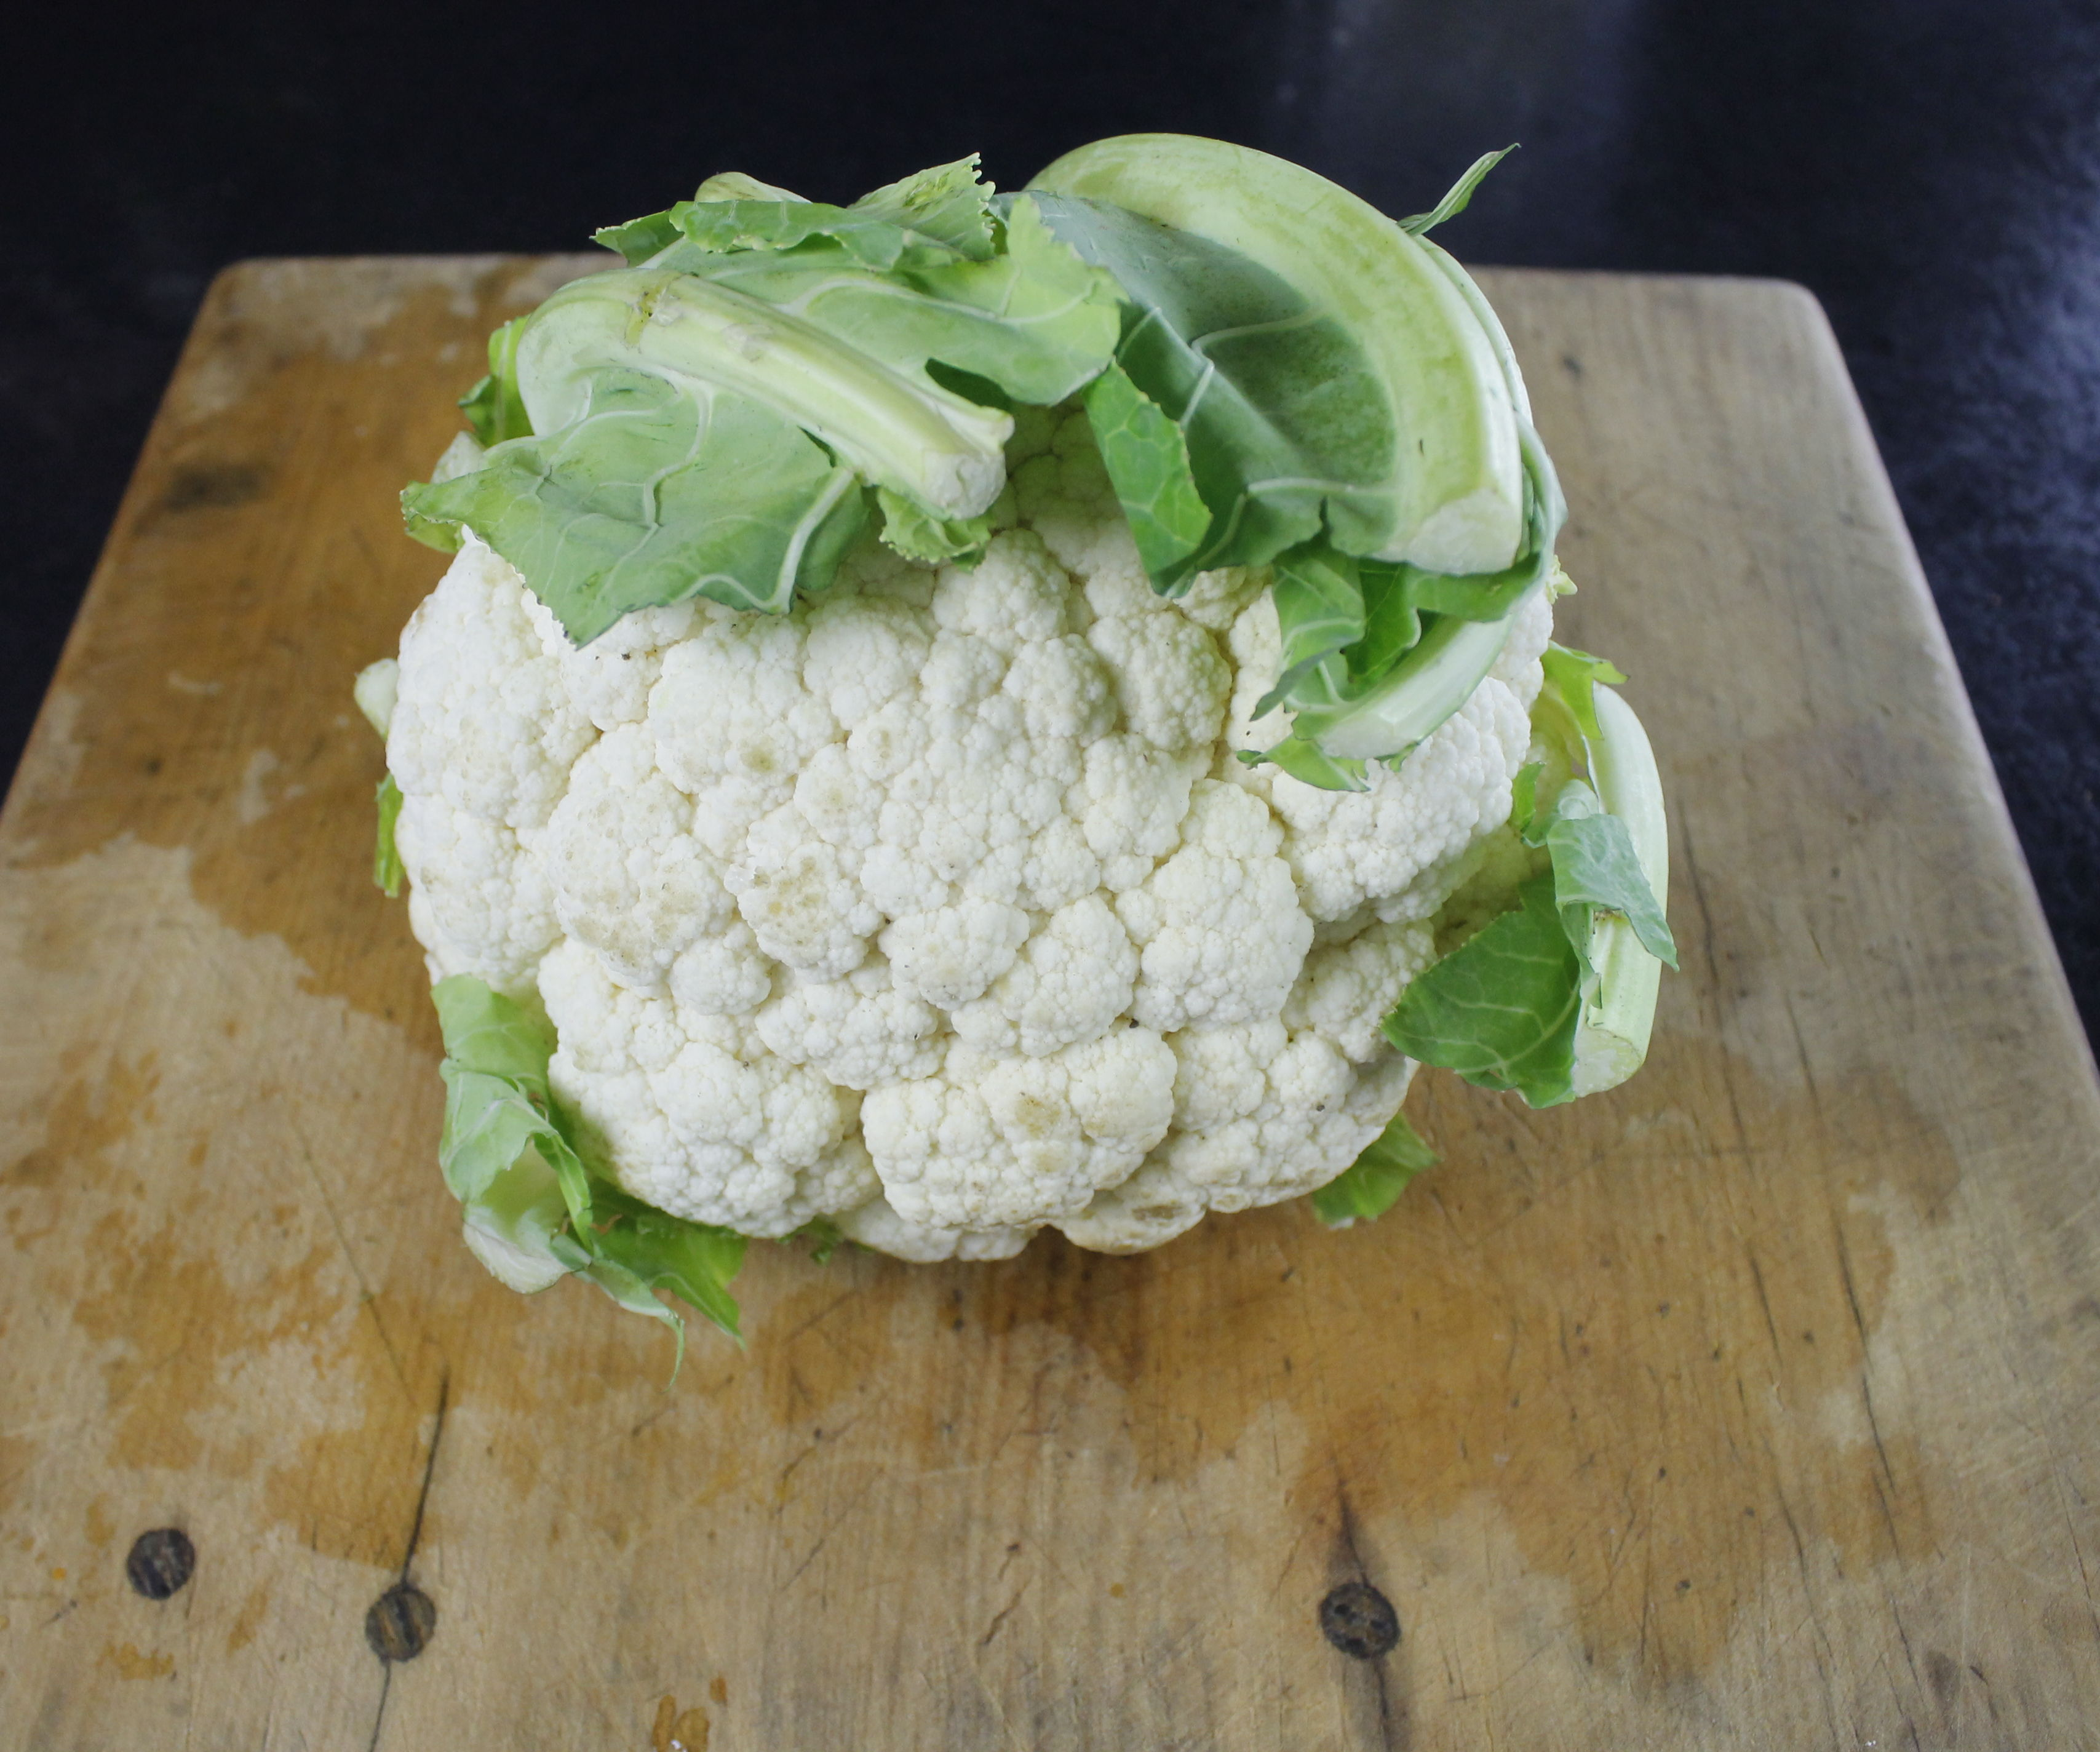 How to Cut up and Puree a Cauliflower